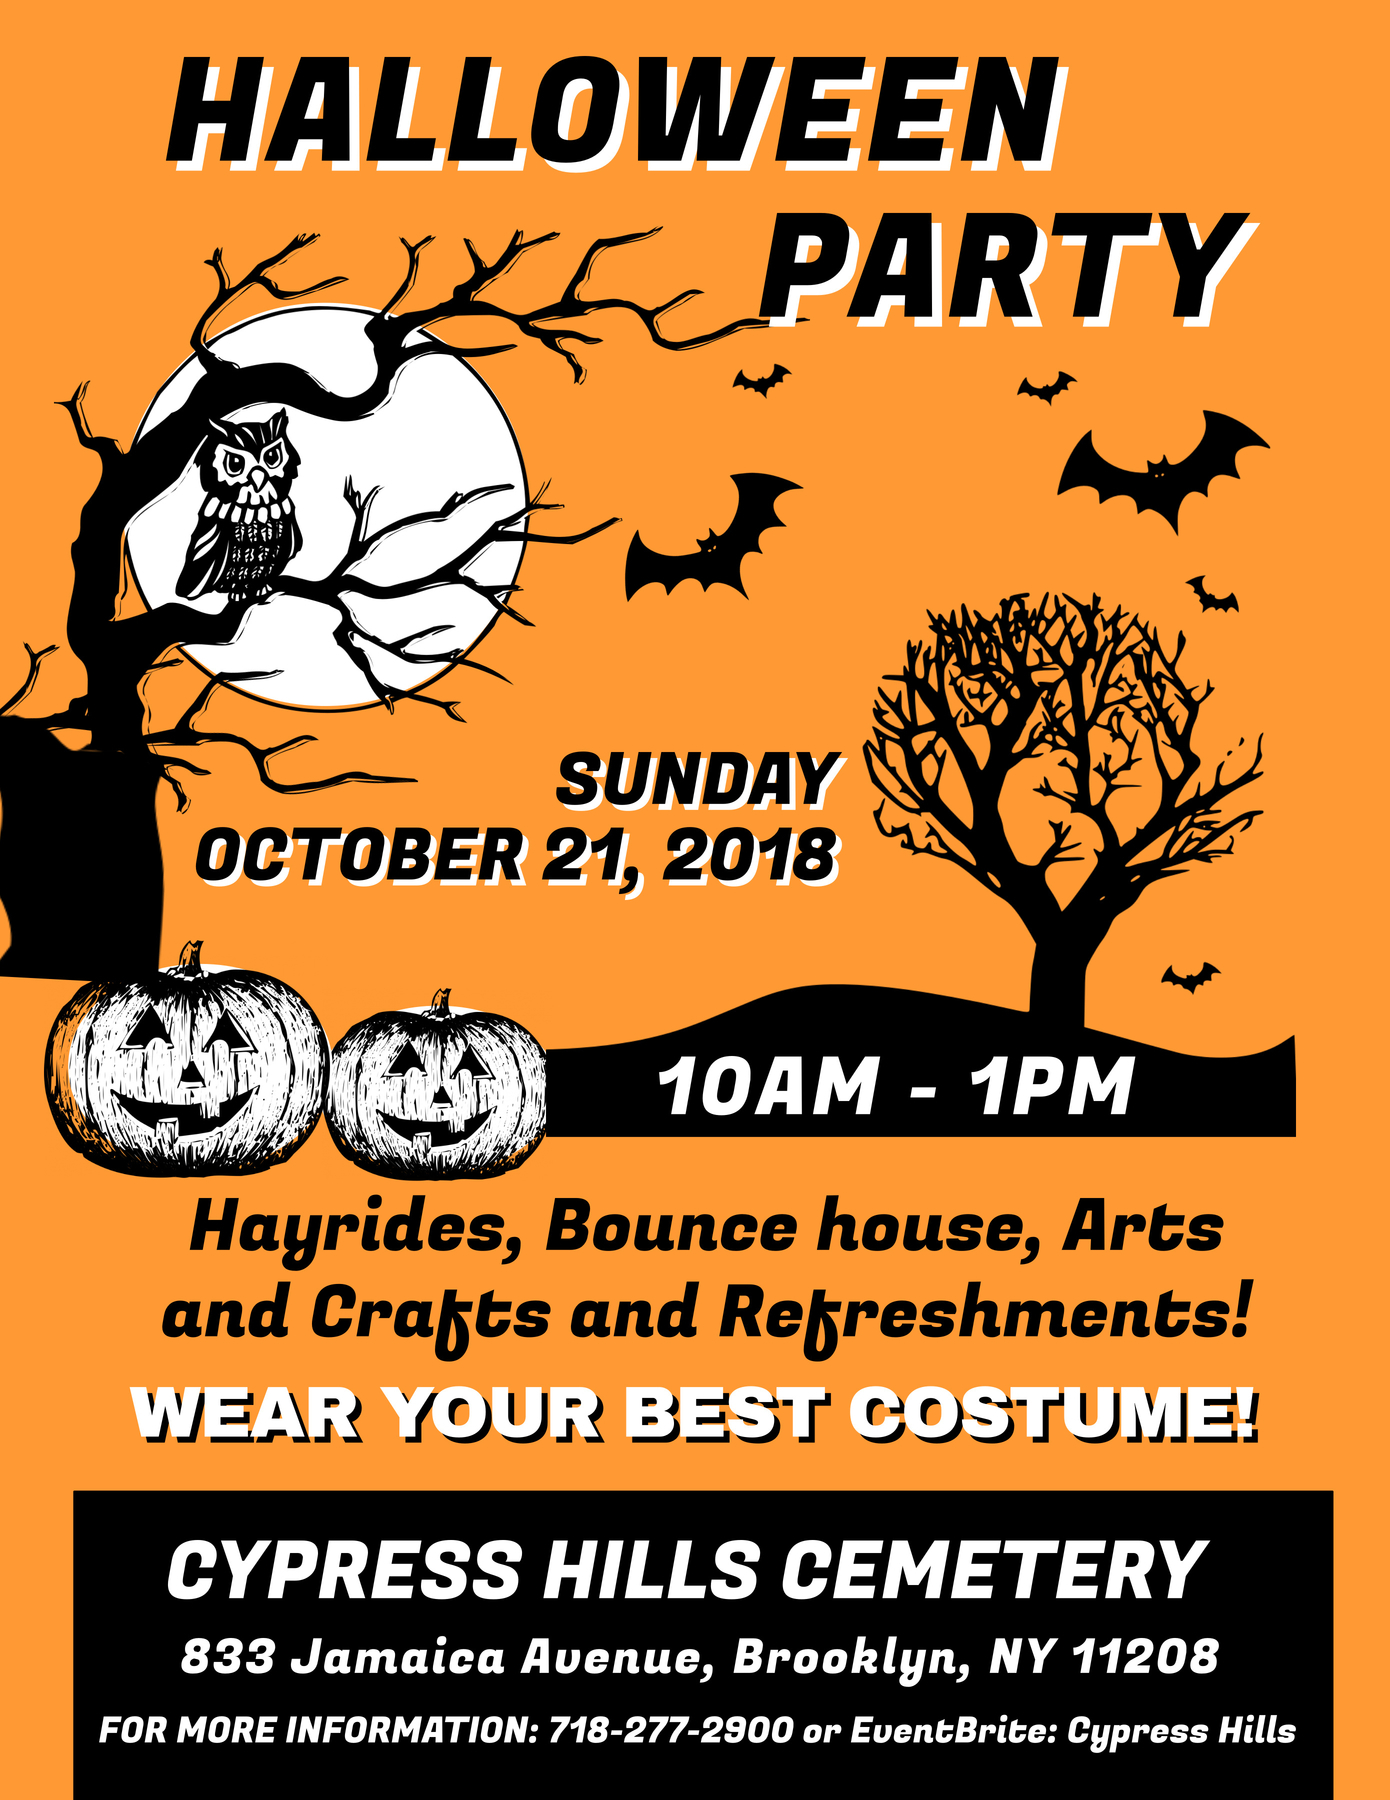 halloween party 2018 cypress hills cemetery